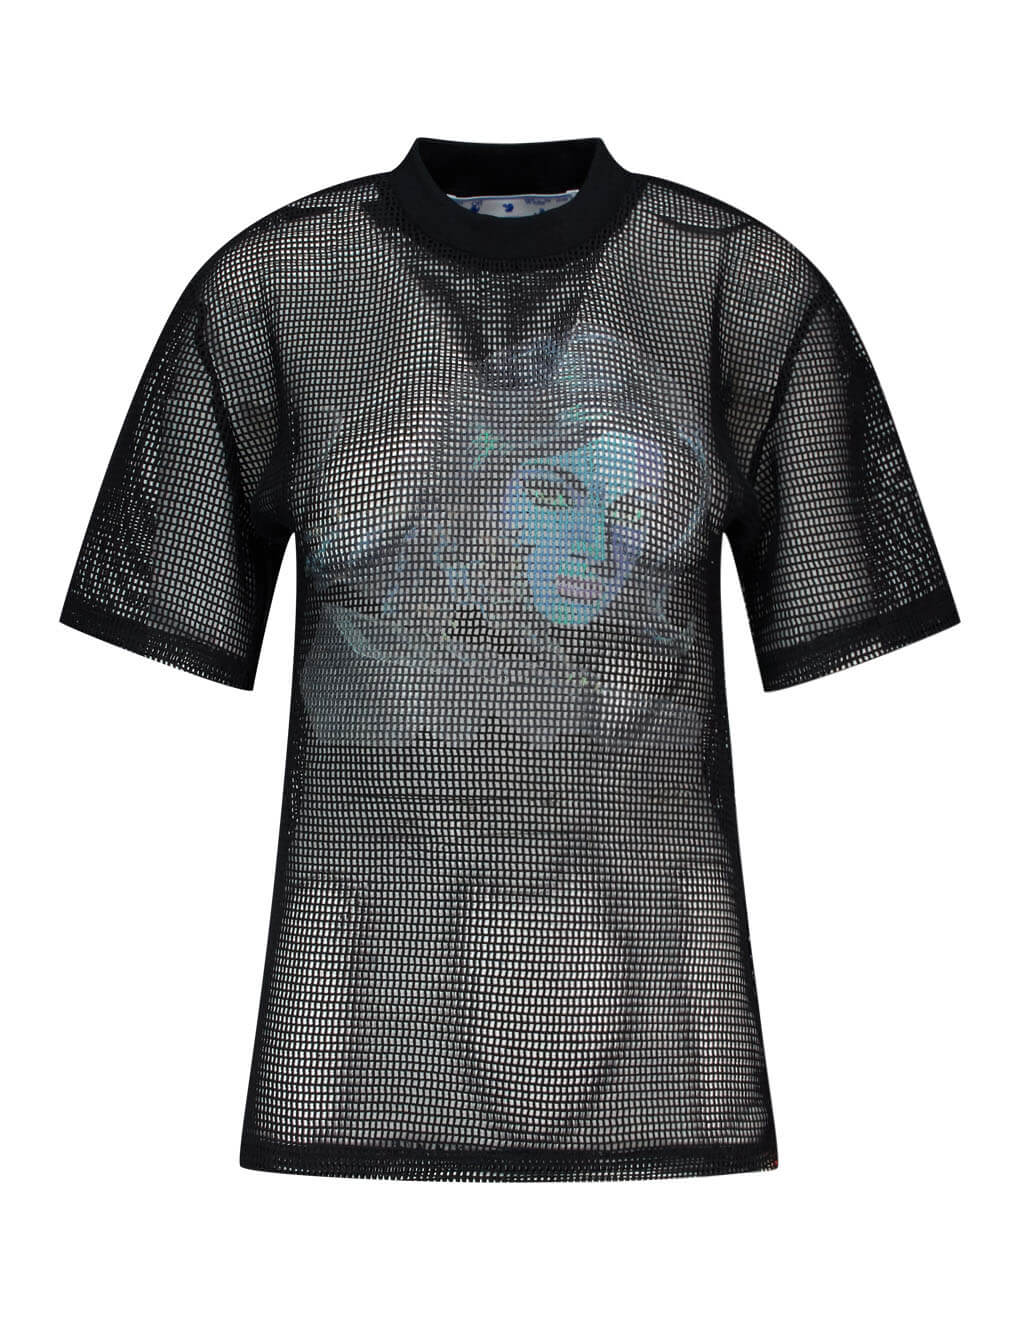 Women's Black and Blue Off-White Panther Printed Draped Net Top OWAD113S20FAB0011045